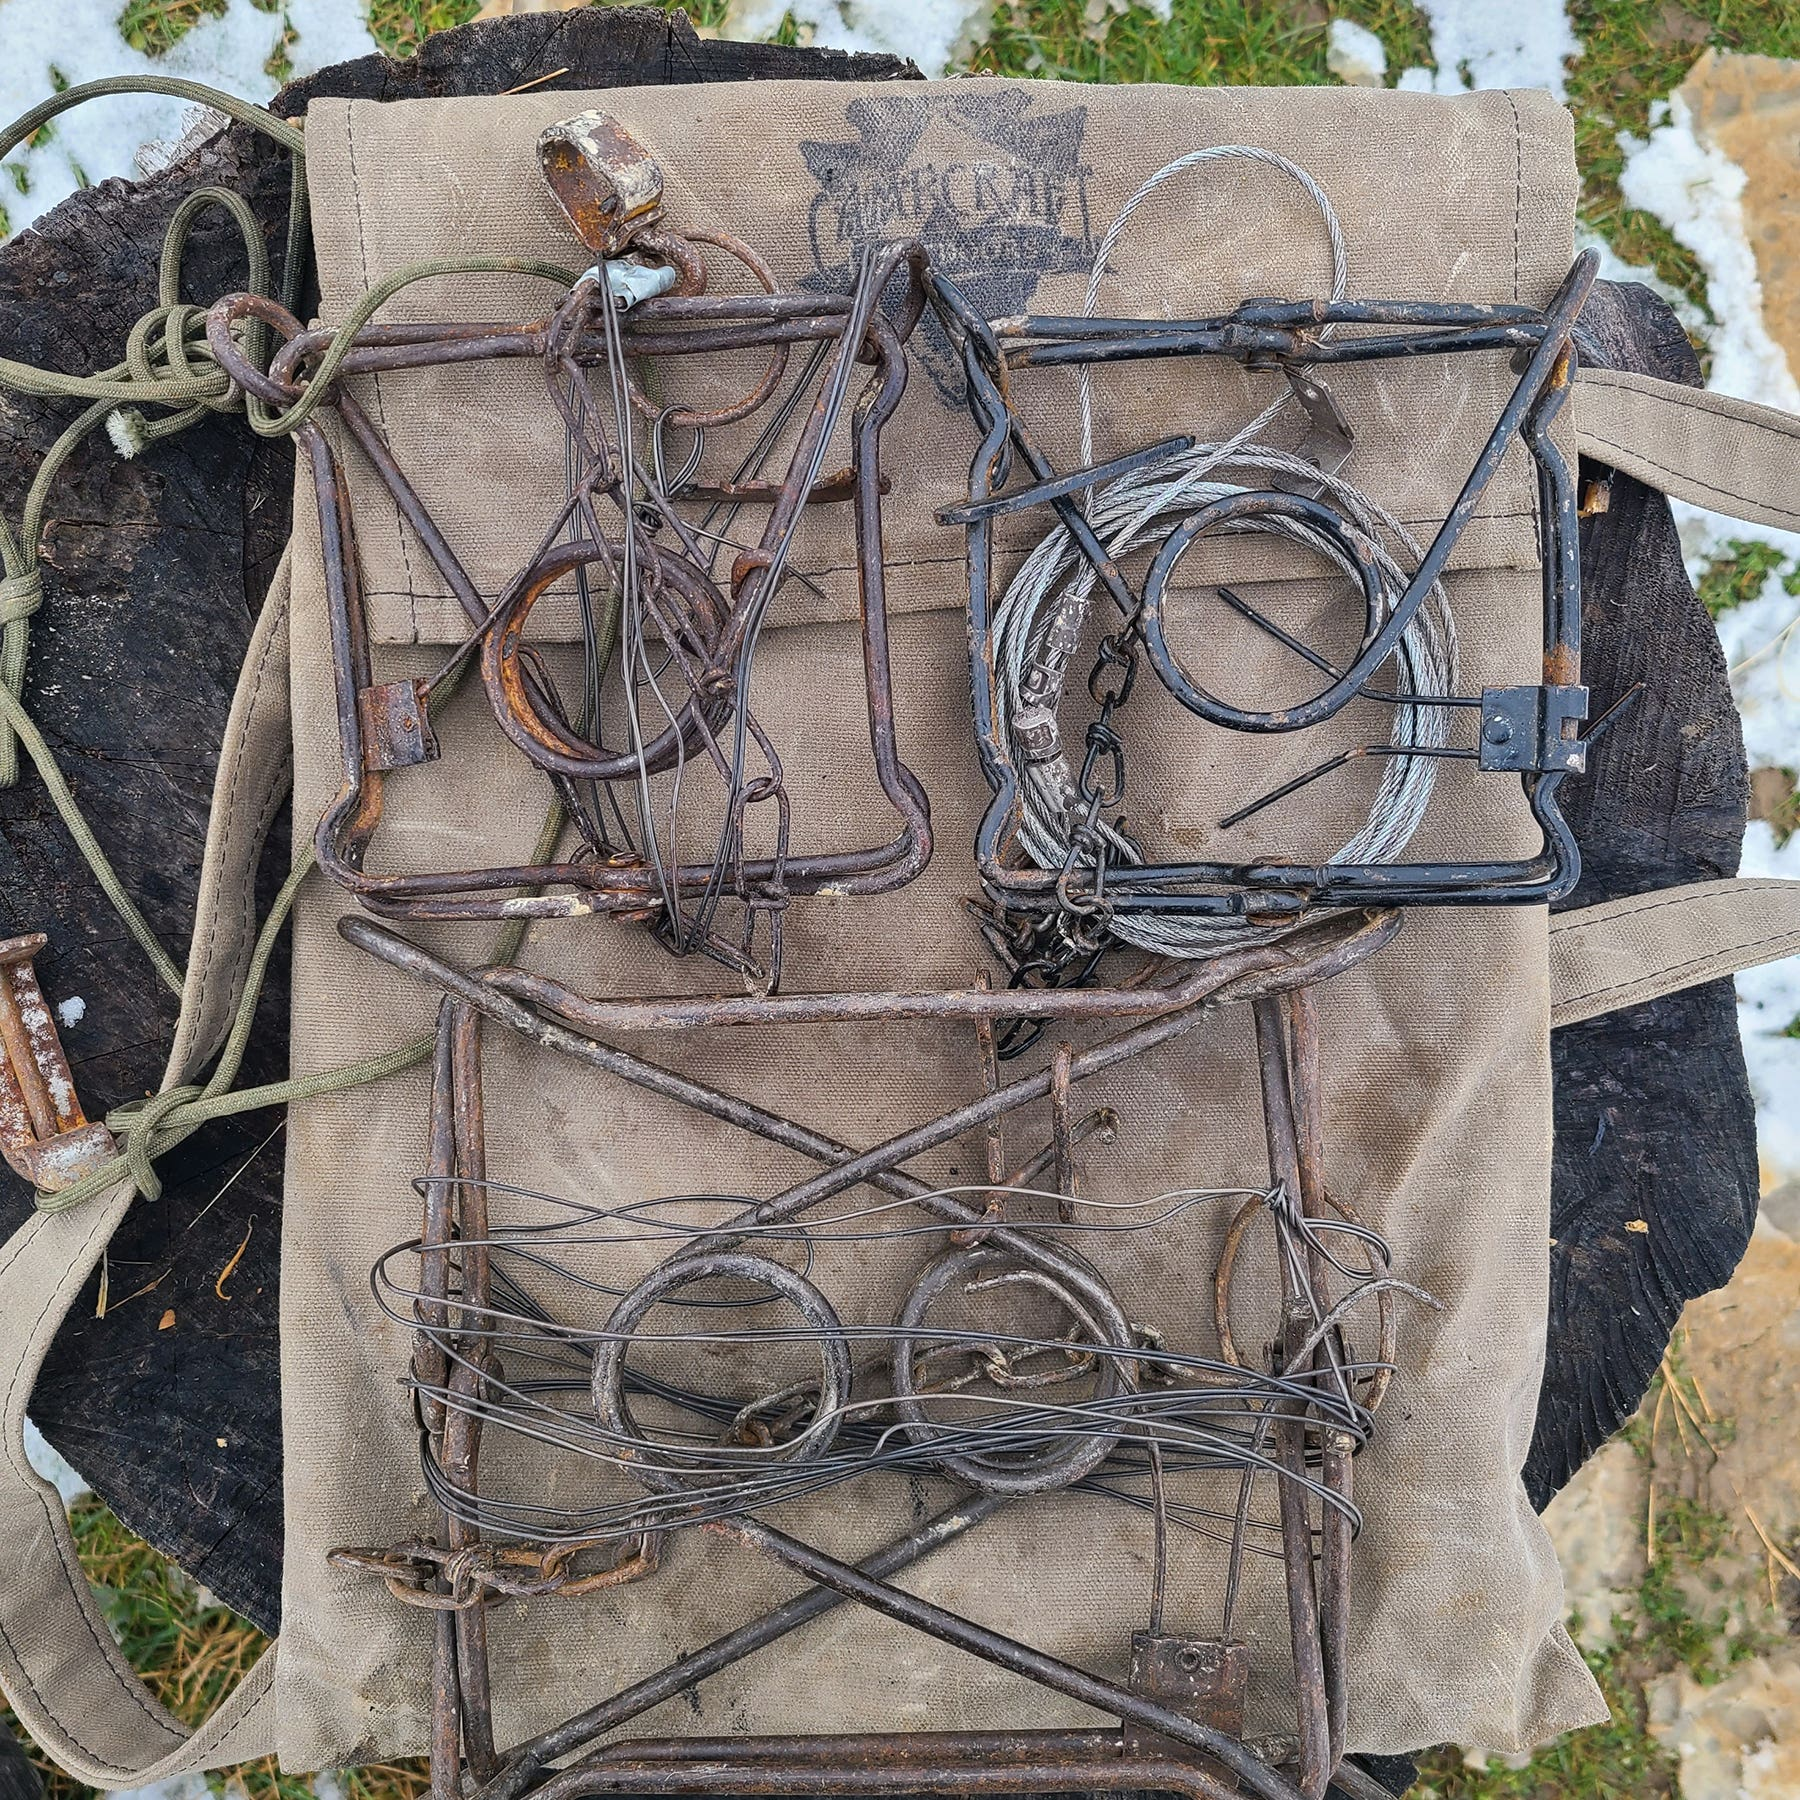 YOUR TRAPPING KIT